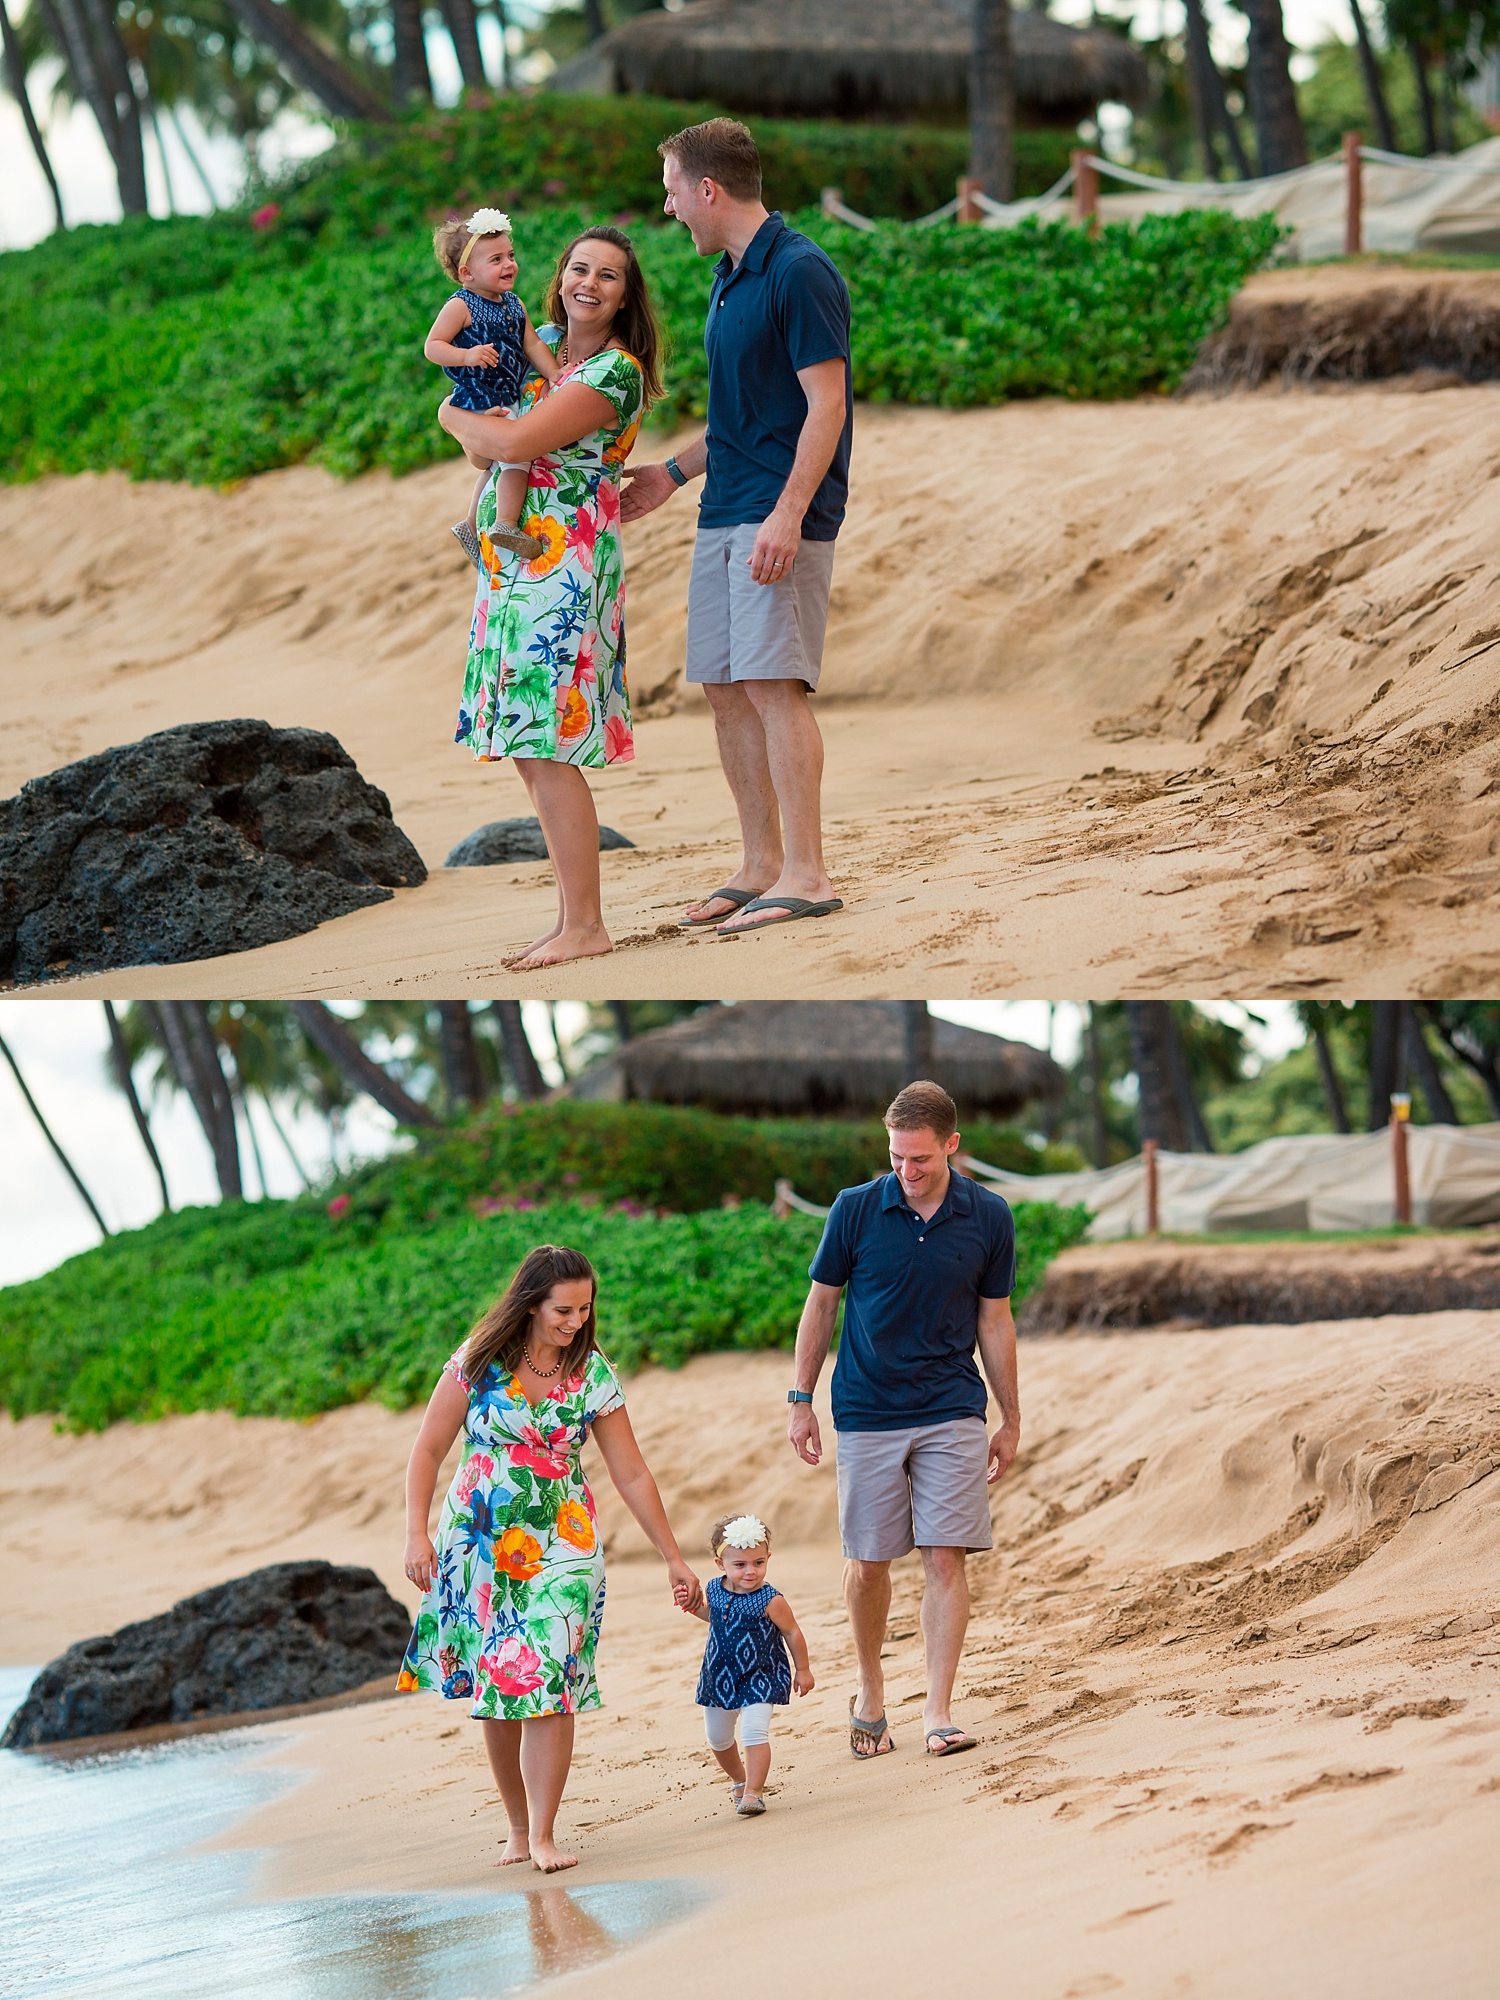 Hyatt Regency Maui Hawaii sunset beach family photoshoot